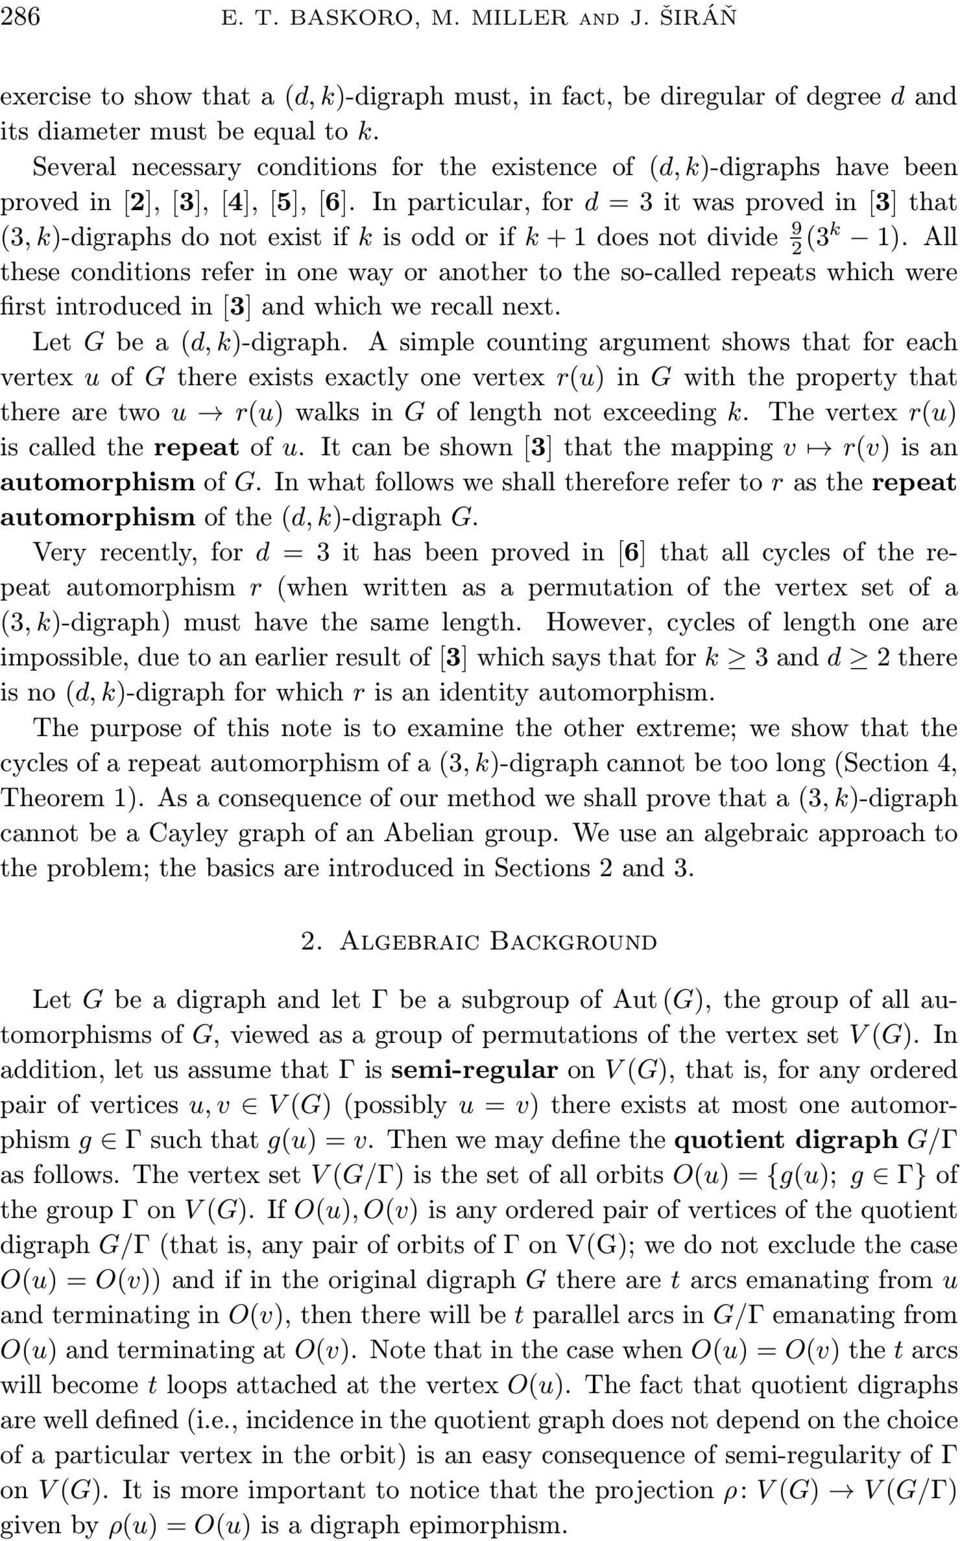 In particular, for d = 3 it was proved in [3] that (3, k)-digraphs do not exist if k is odd or if k + 1 does not divide 9 2 (3k 1).